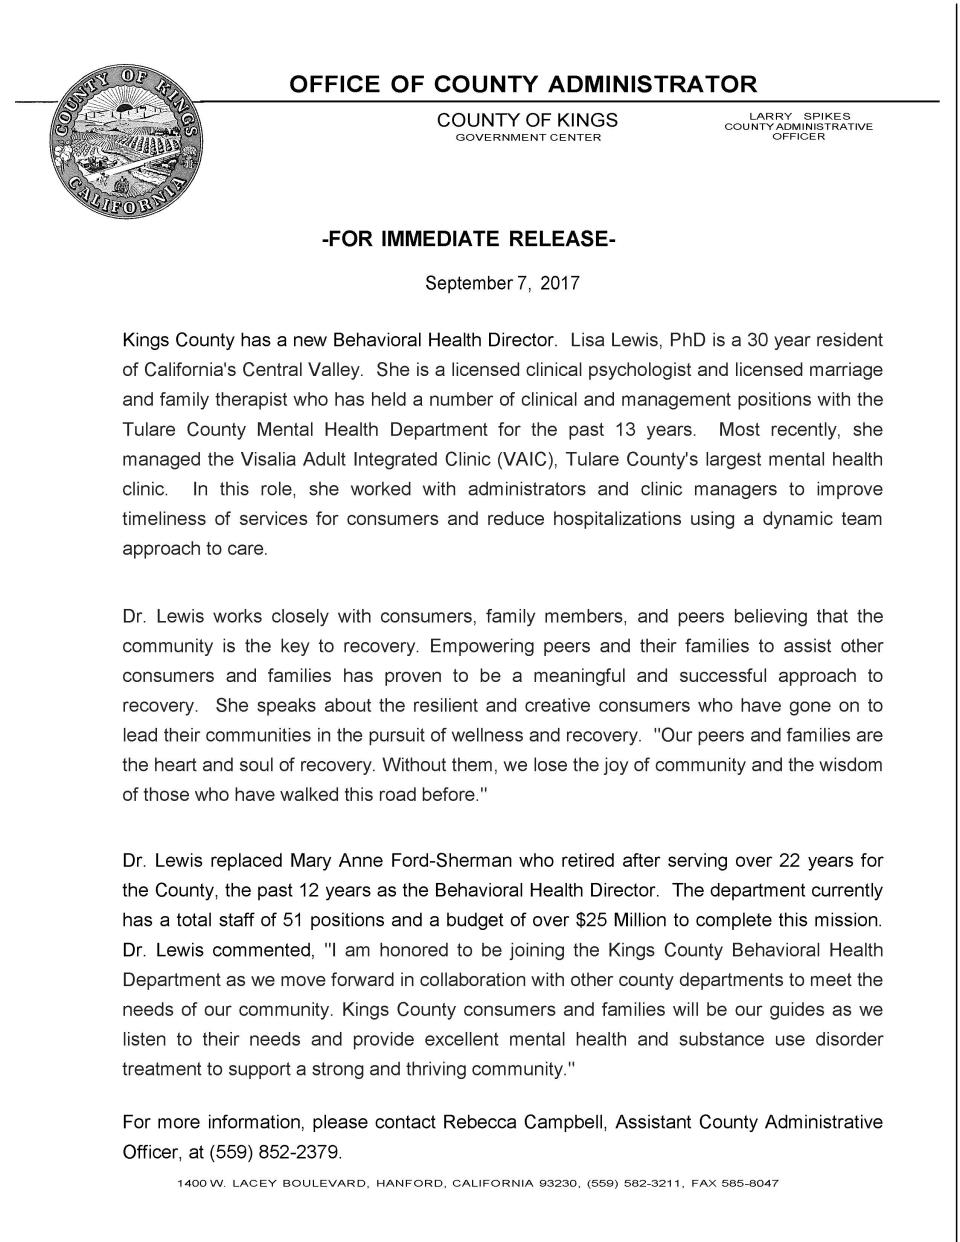 Press Release BH - Lewis